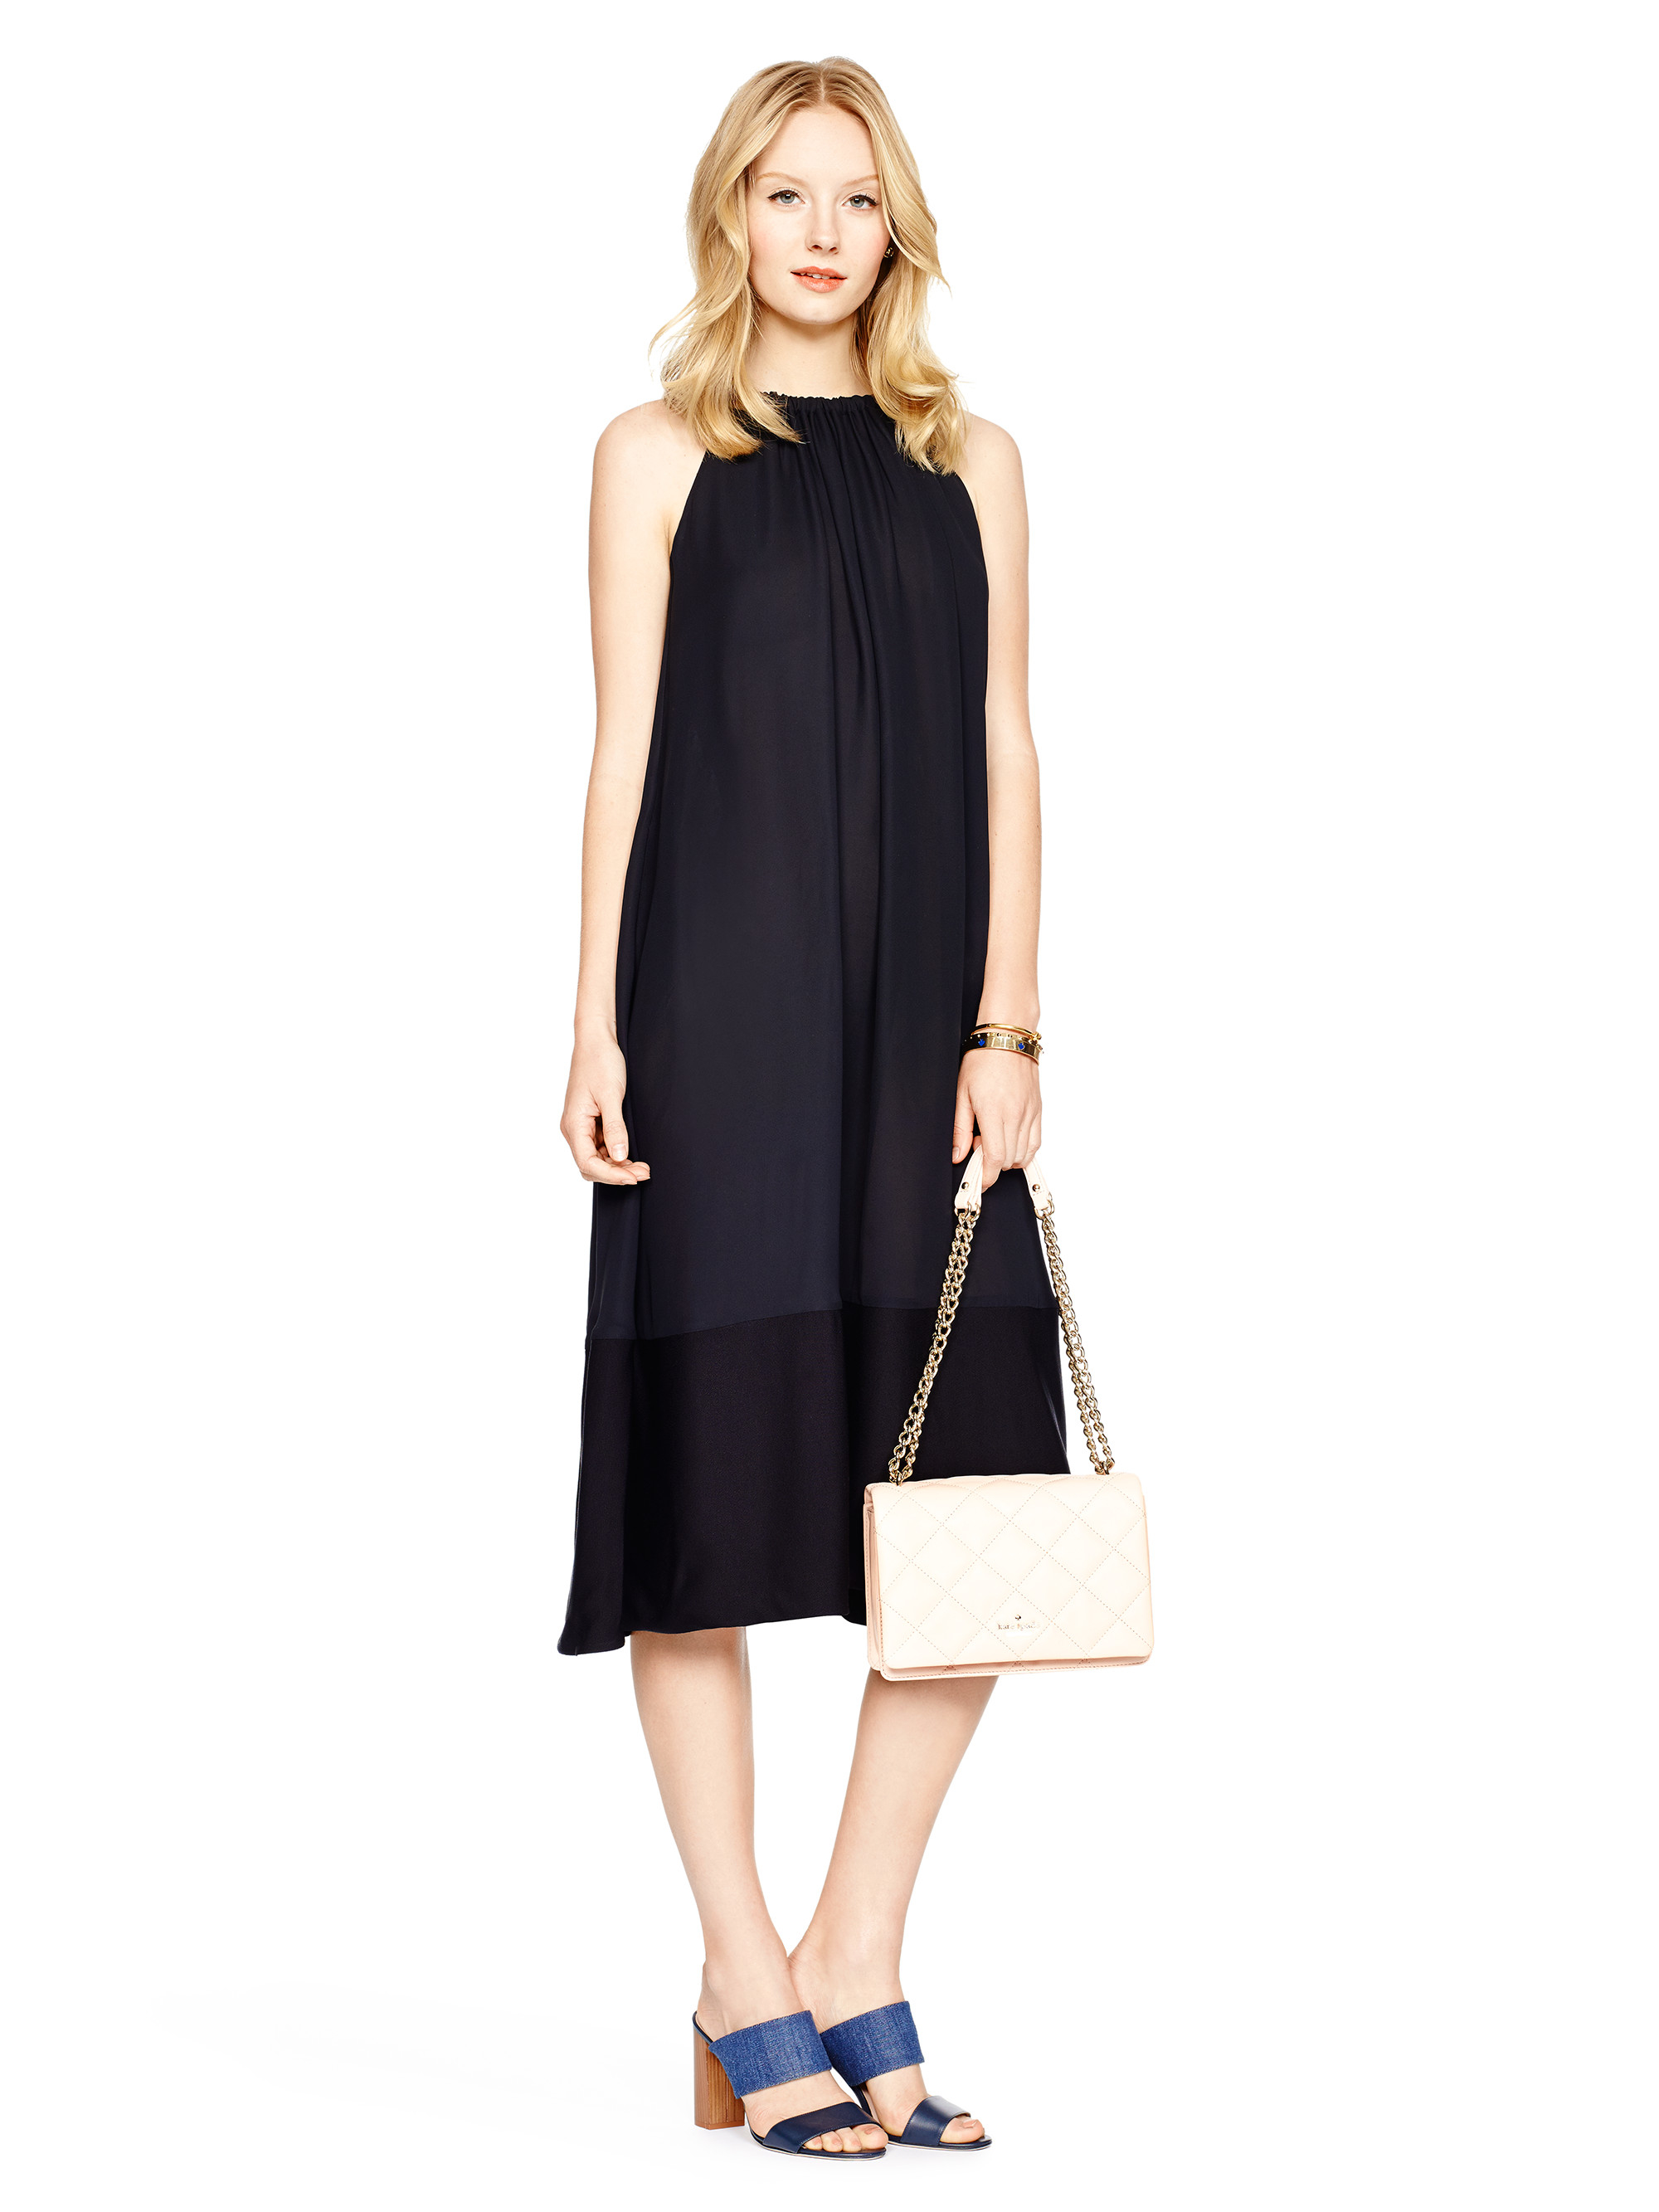 Lyst Kate Spade New York Trapeze Dress In Black